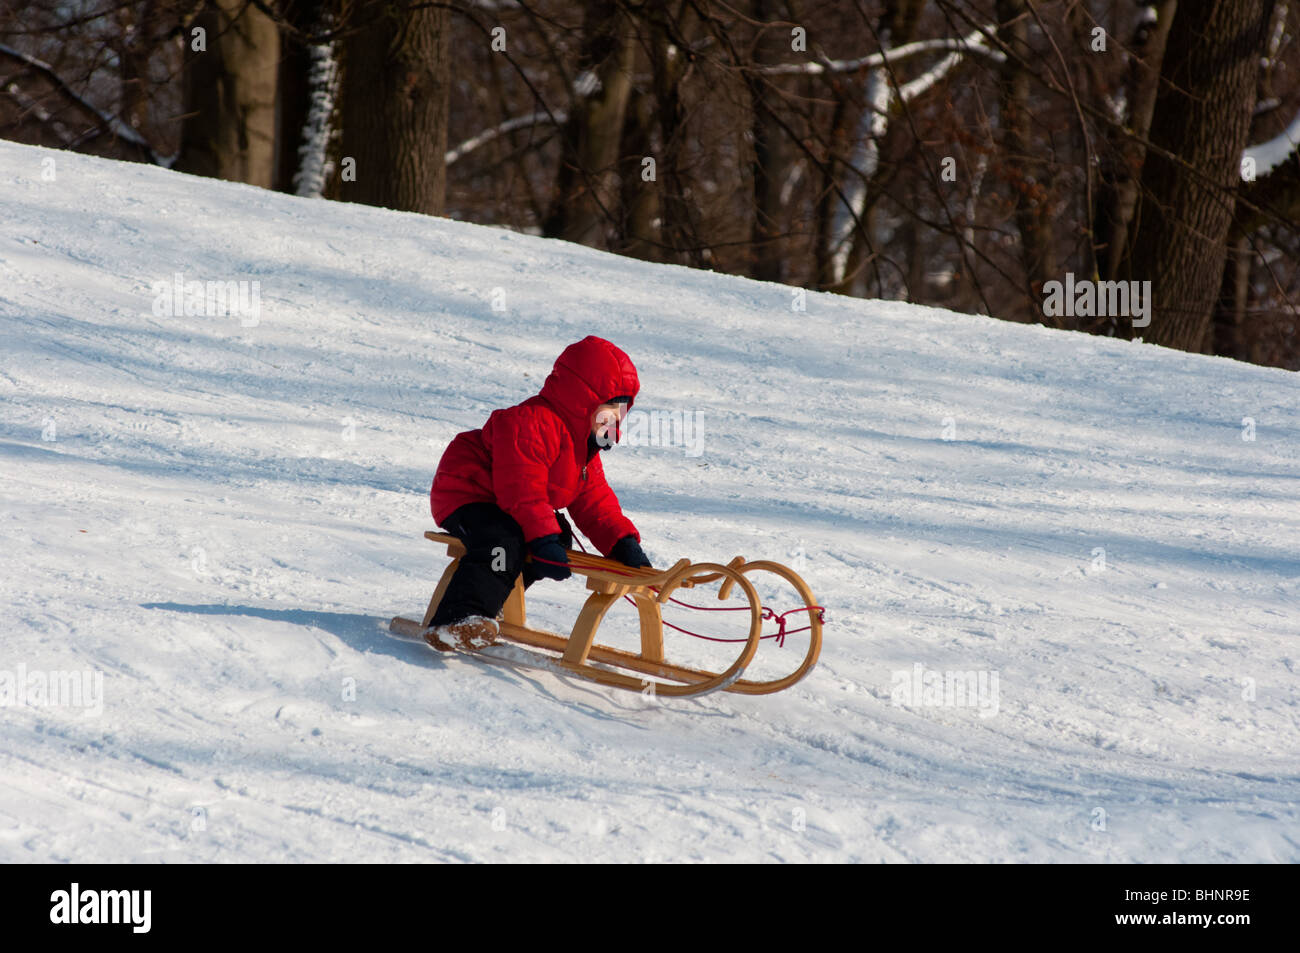 Boy riding his sledge downhill in Englischer garten, Munich, Germany - Stock Image